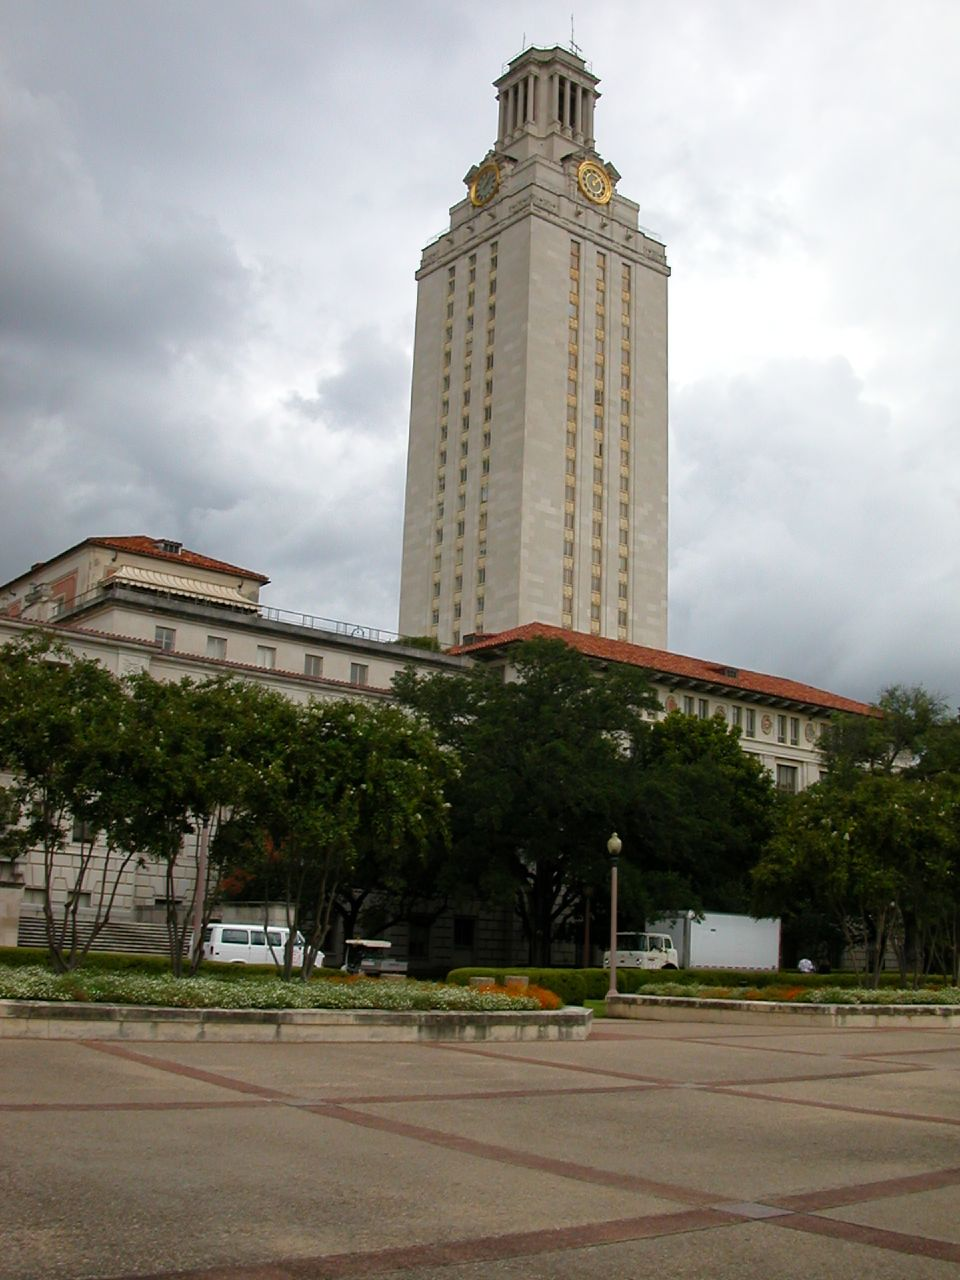 University Of Texas Organizational Chart: UT tower from West mall.jpg - Wikimedia Commons,Chart